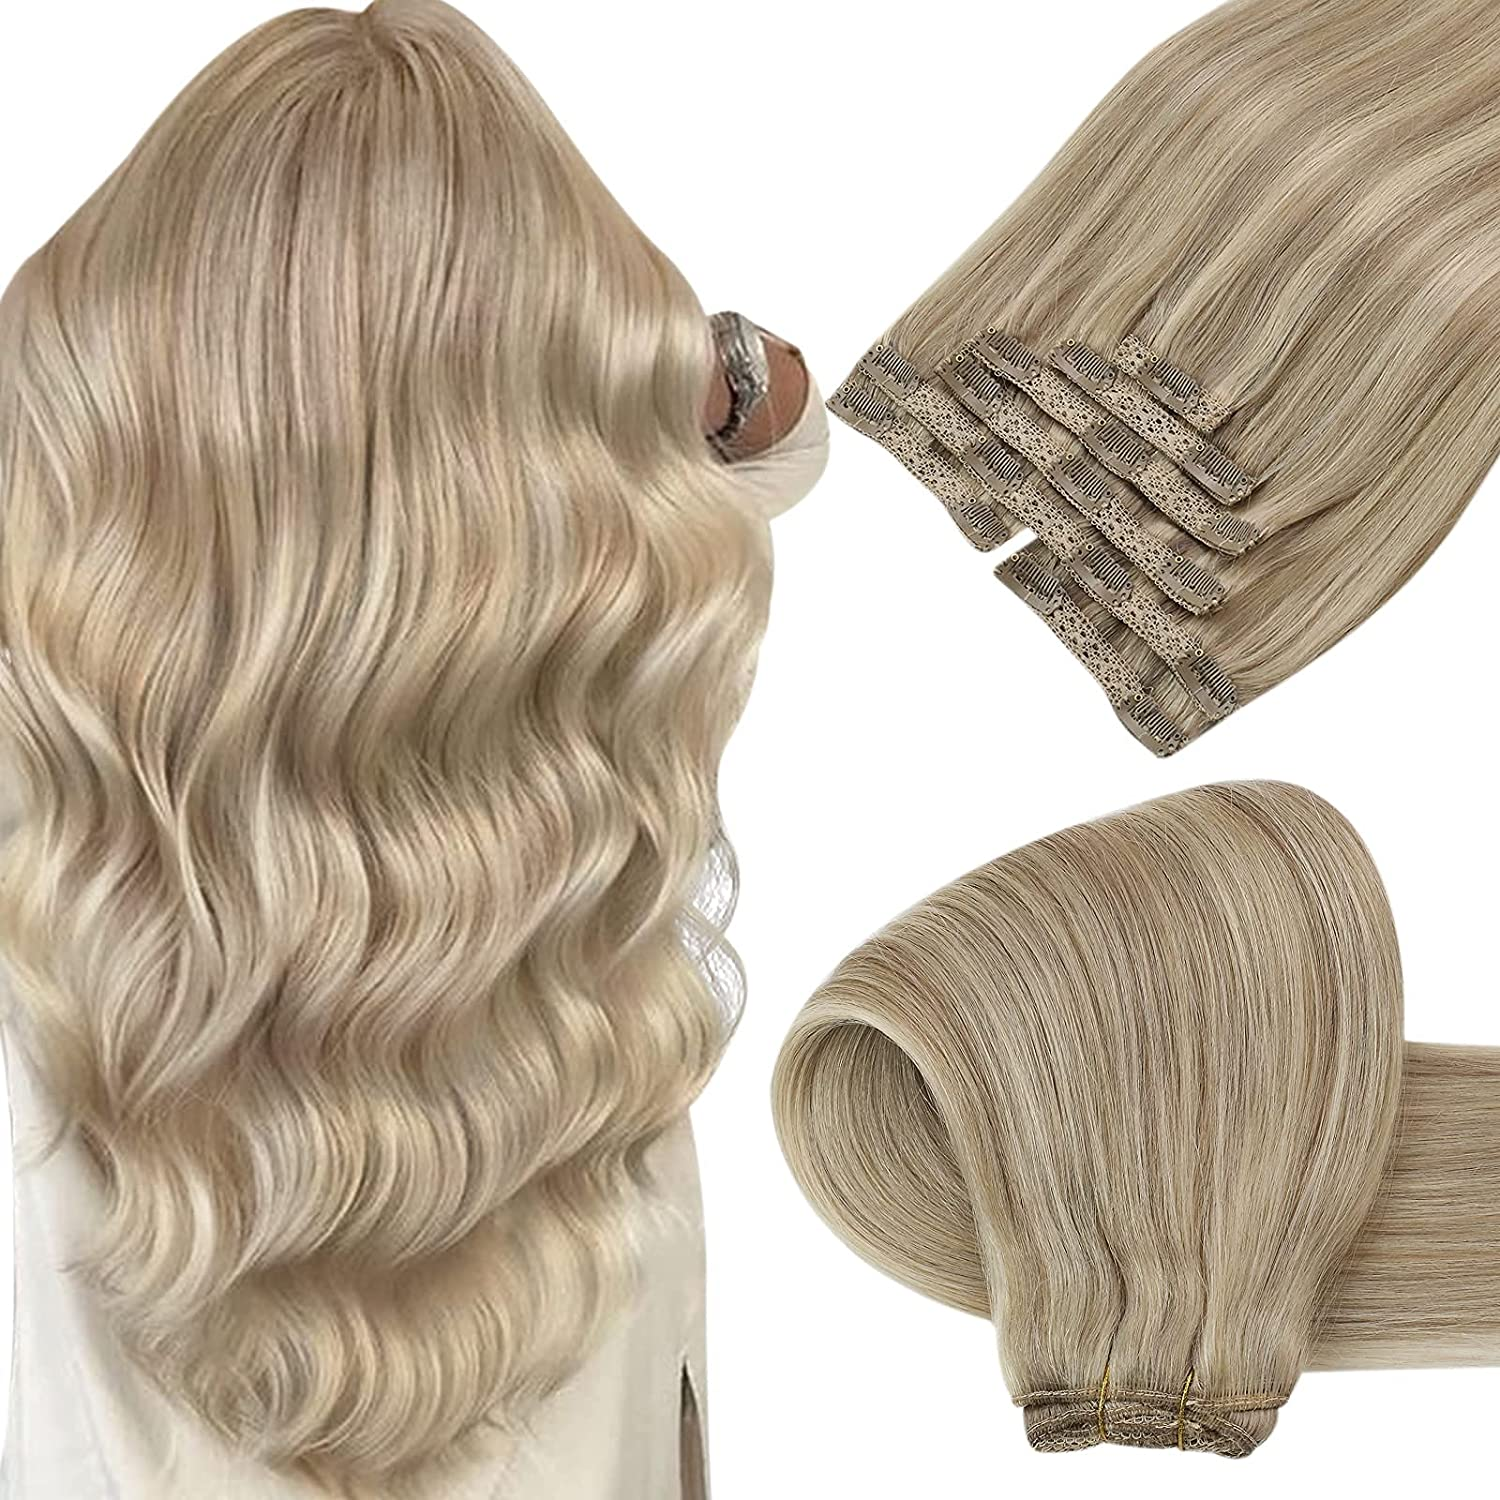 Sunny Super popular specialty store Real Hair Extensions Clip Ash Human Blonde in Be super welcome